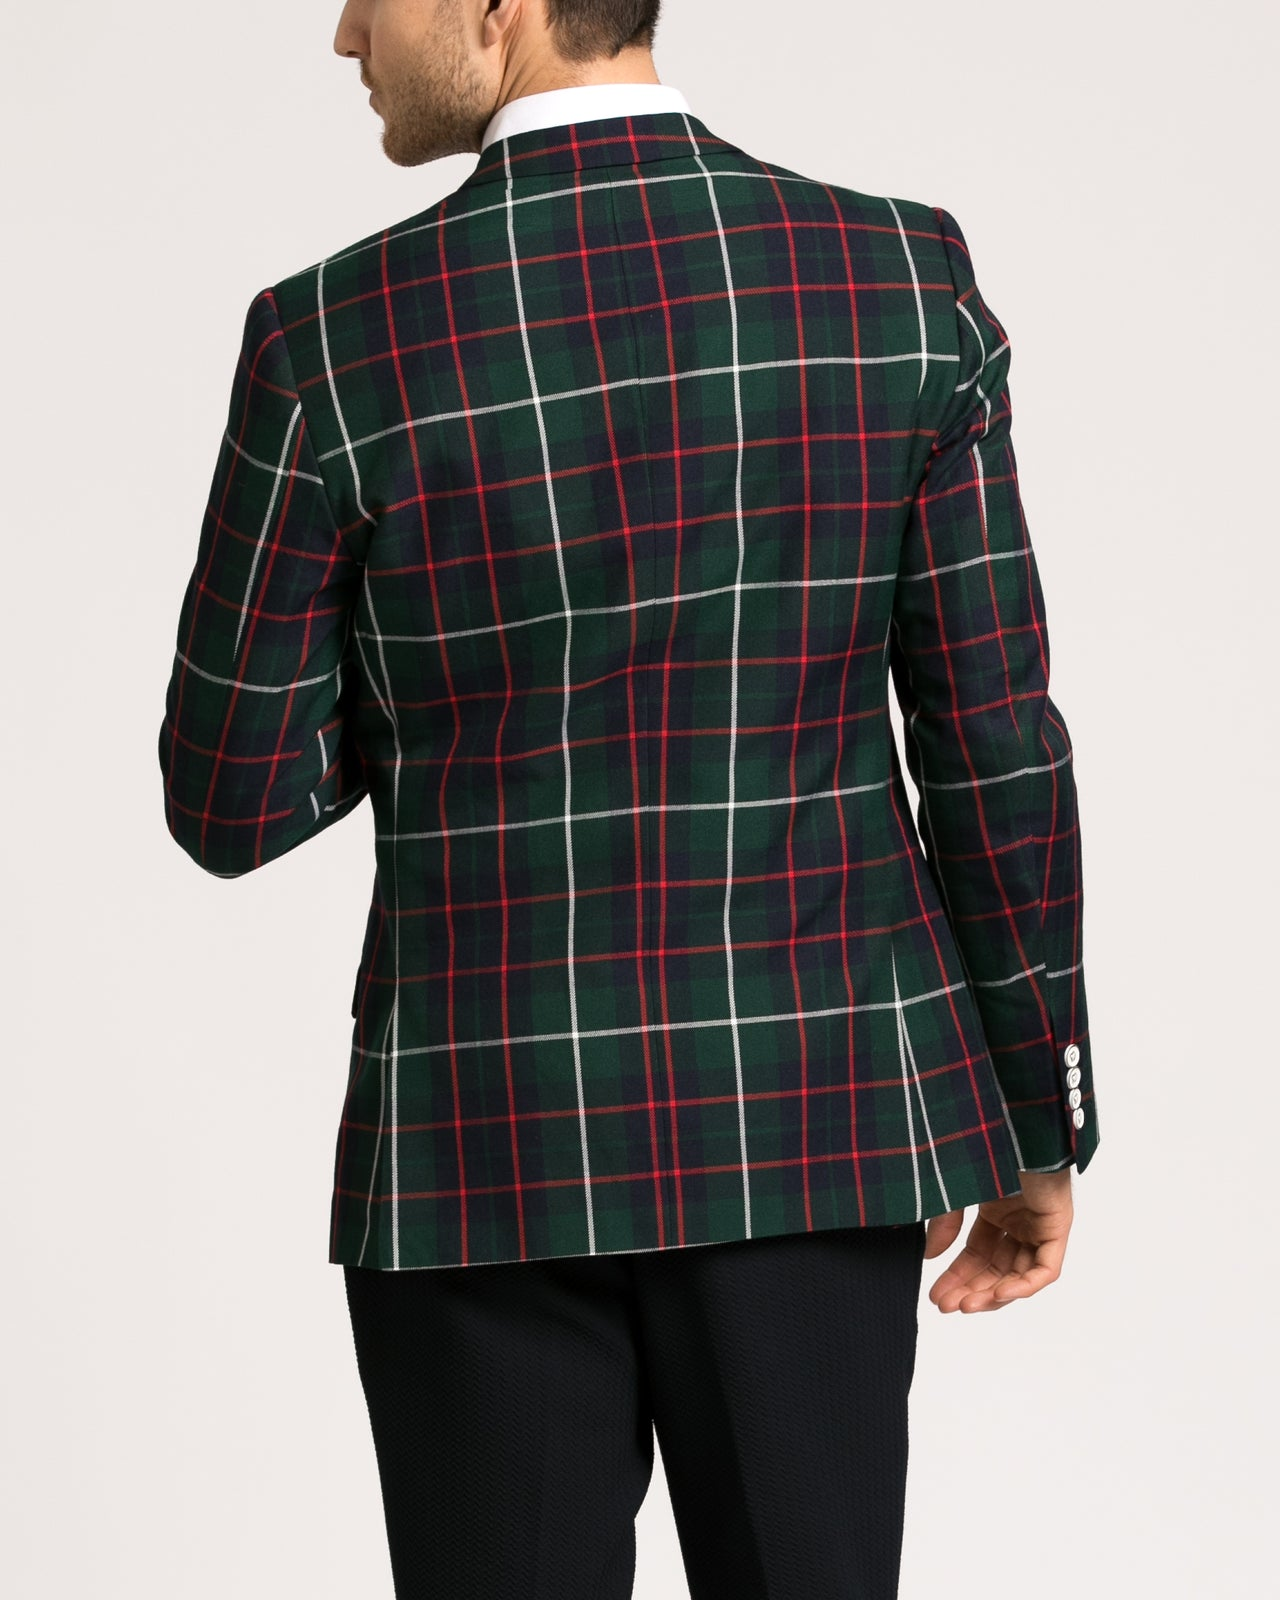 Dover Notch Jacket - Color: Green Navy/ Red Tartan | Green